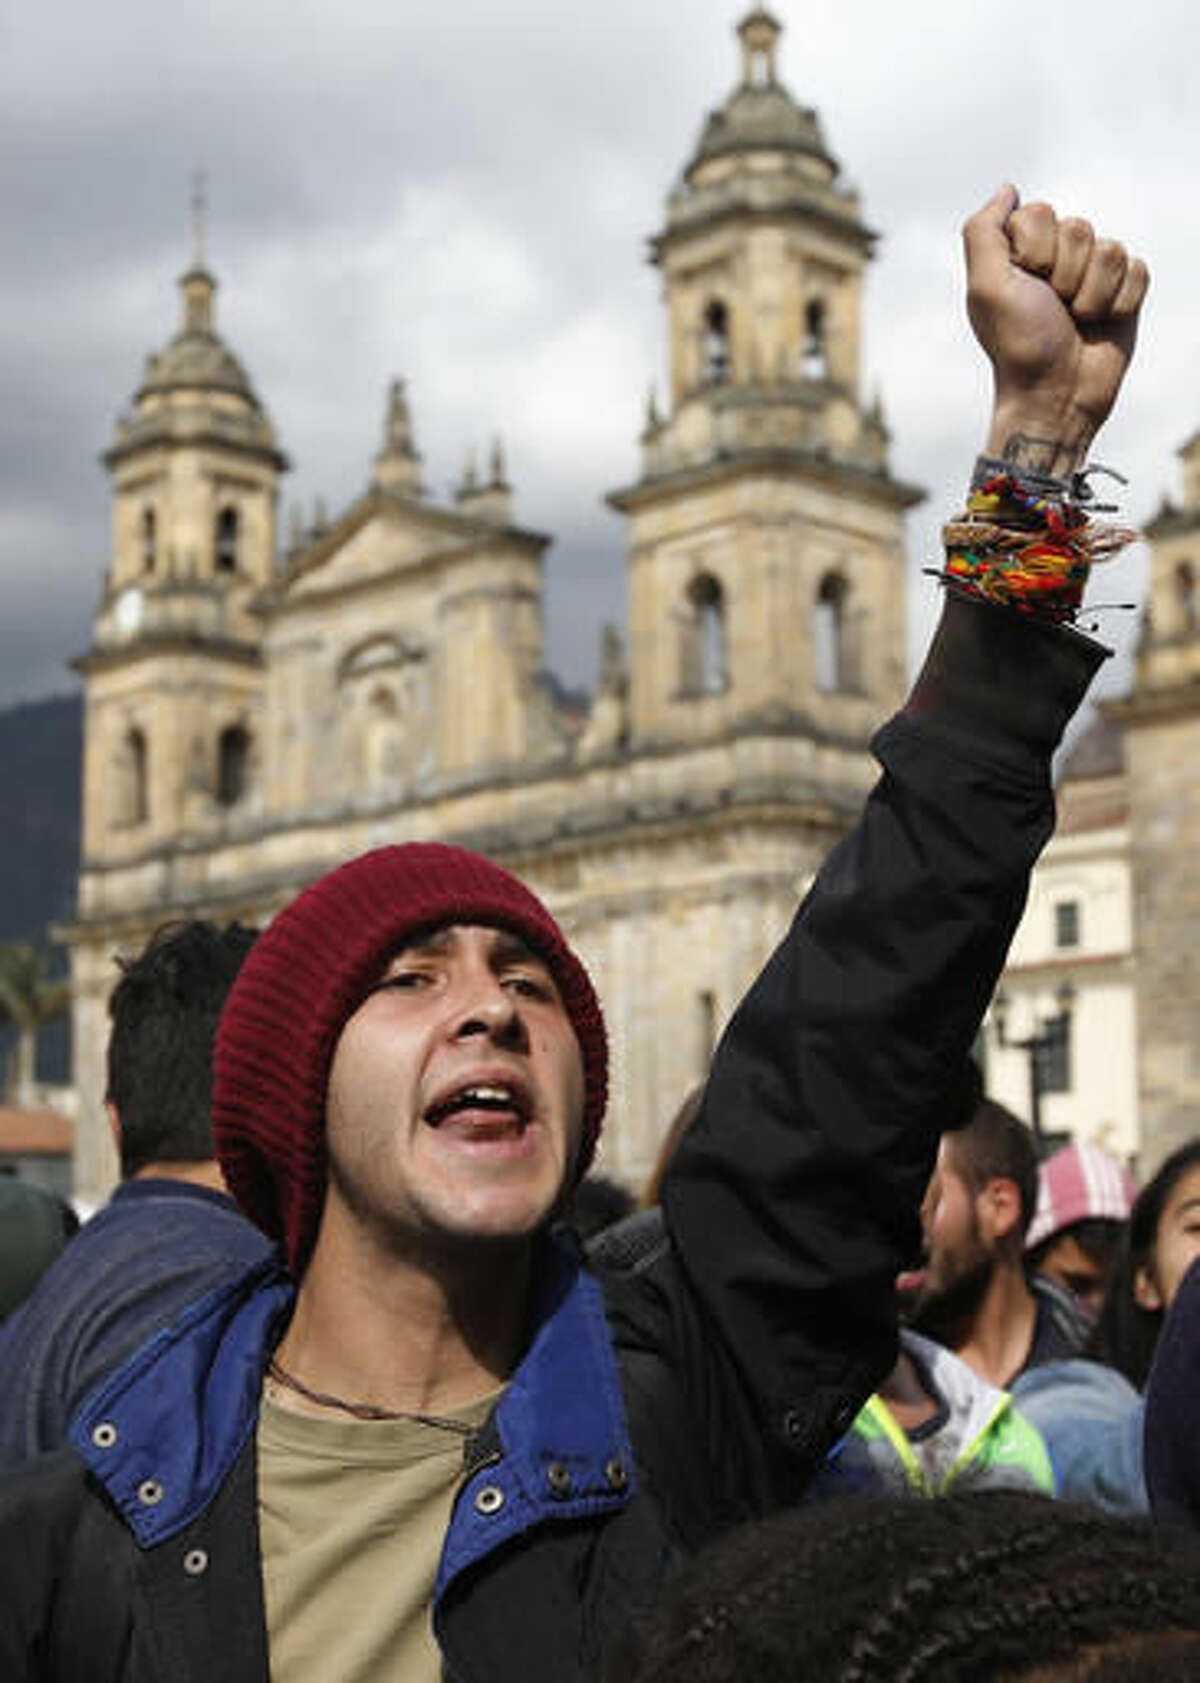 A supporter of the peace deal signed between the Colombian government and rebels of the Revolutionary Armed Forces of Colombia, FARC, shouts slogans in front of Congress, in Bogota, Colombia, Monday, Oct. 3, 2016. Colombians rejected a peace deal with leftist rebels of the Revolutionary Armed Forces of Colombia, FARC, by a razor-thin margin in a national referendum Sunday, dismissing years of negotiations and delivering a setback to President Juan Manuel Santos. (AP Photo/Fernando Vergara)